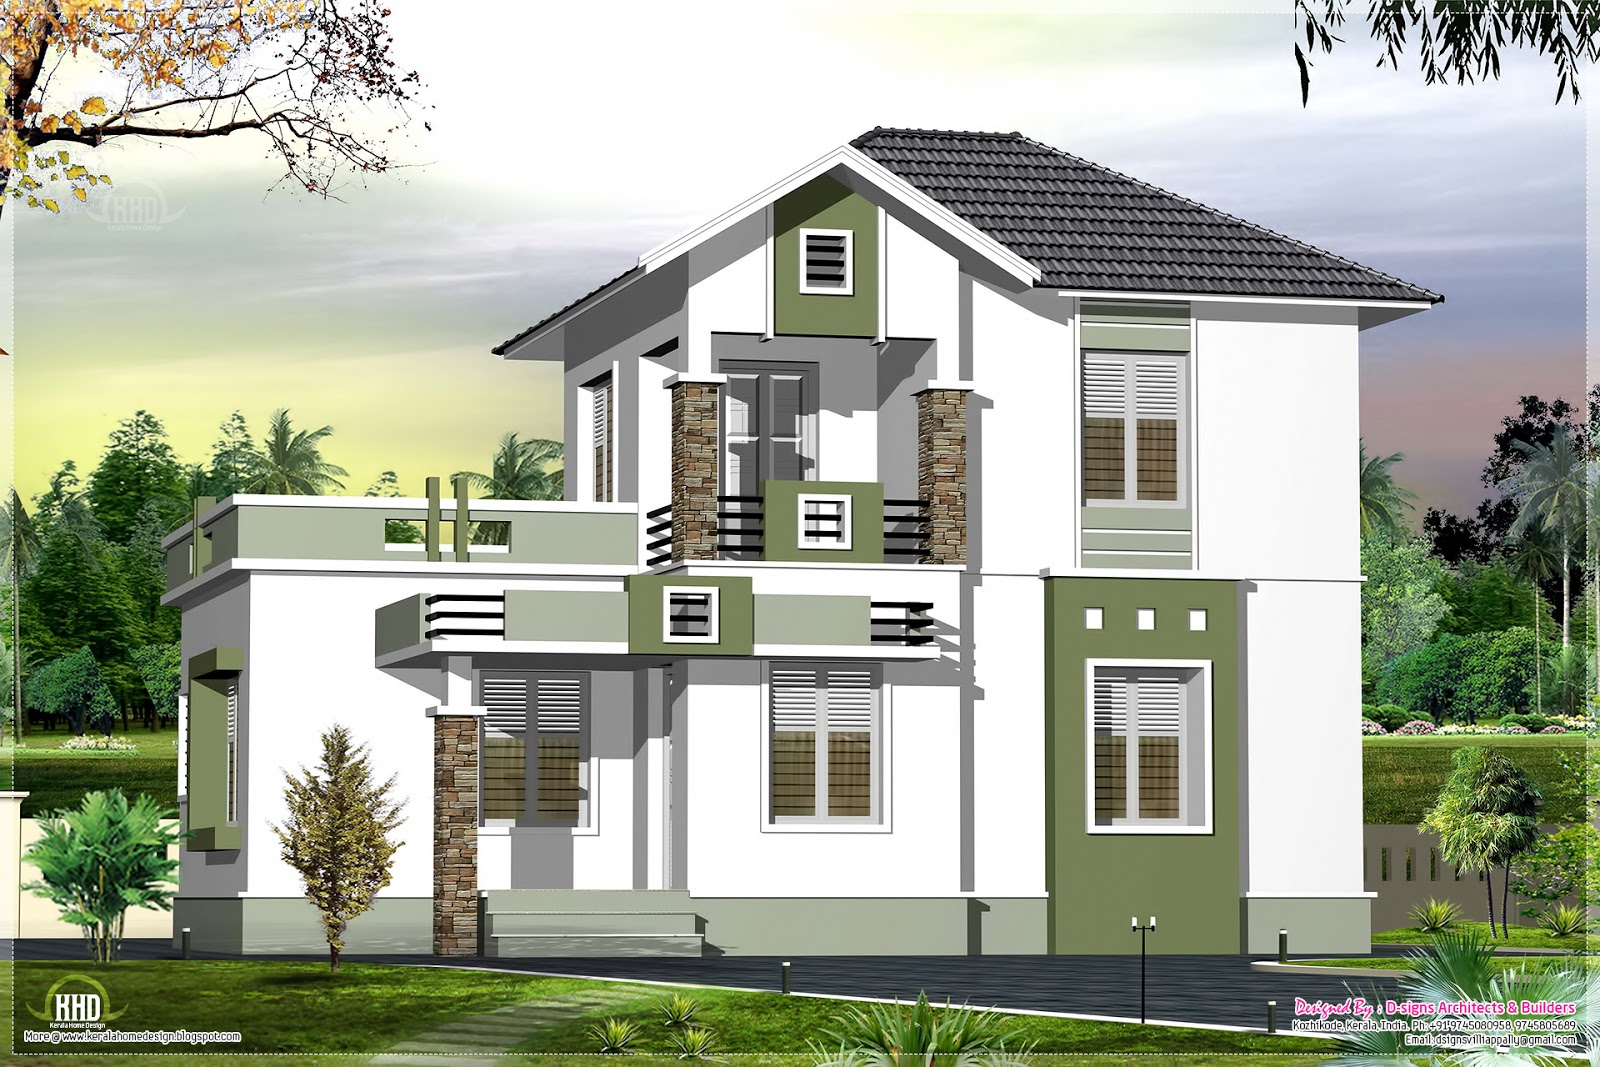 Small double floor home design in 1200 kerala for House plans indian style in 1200 sq ft